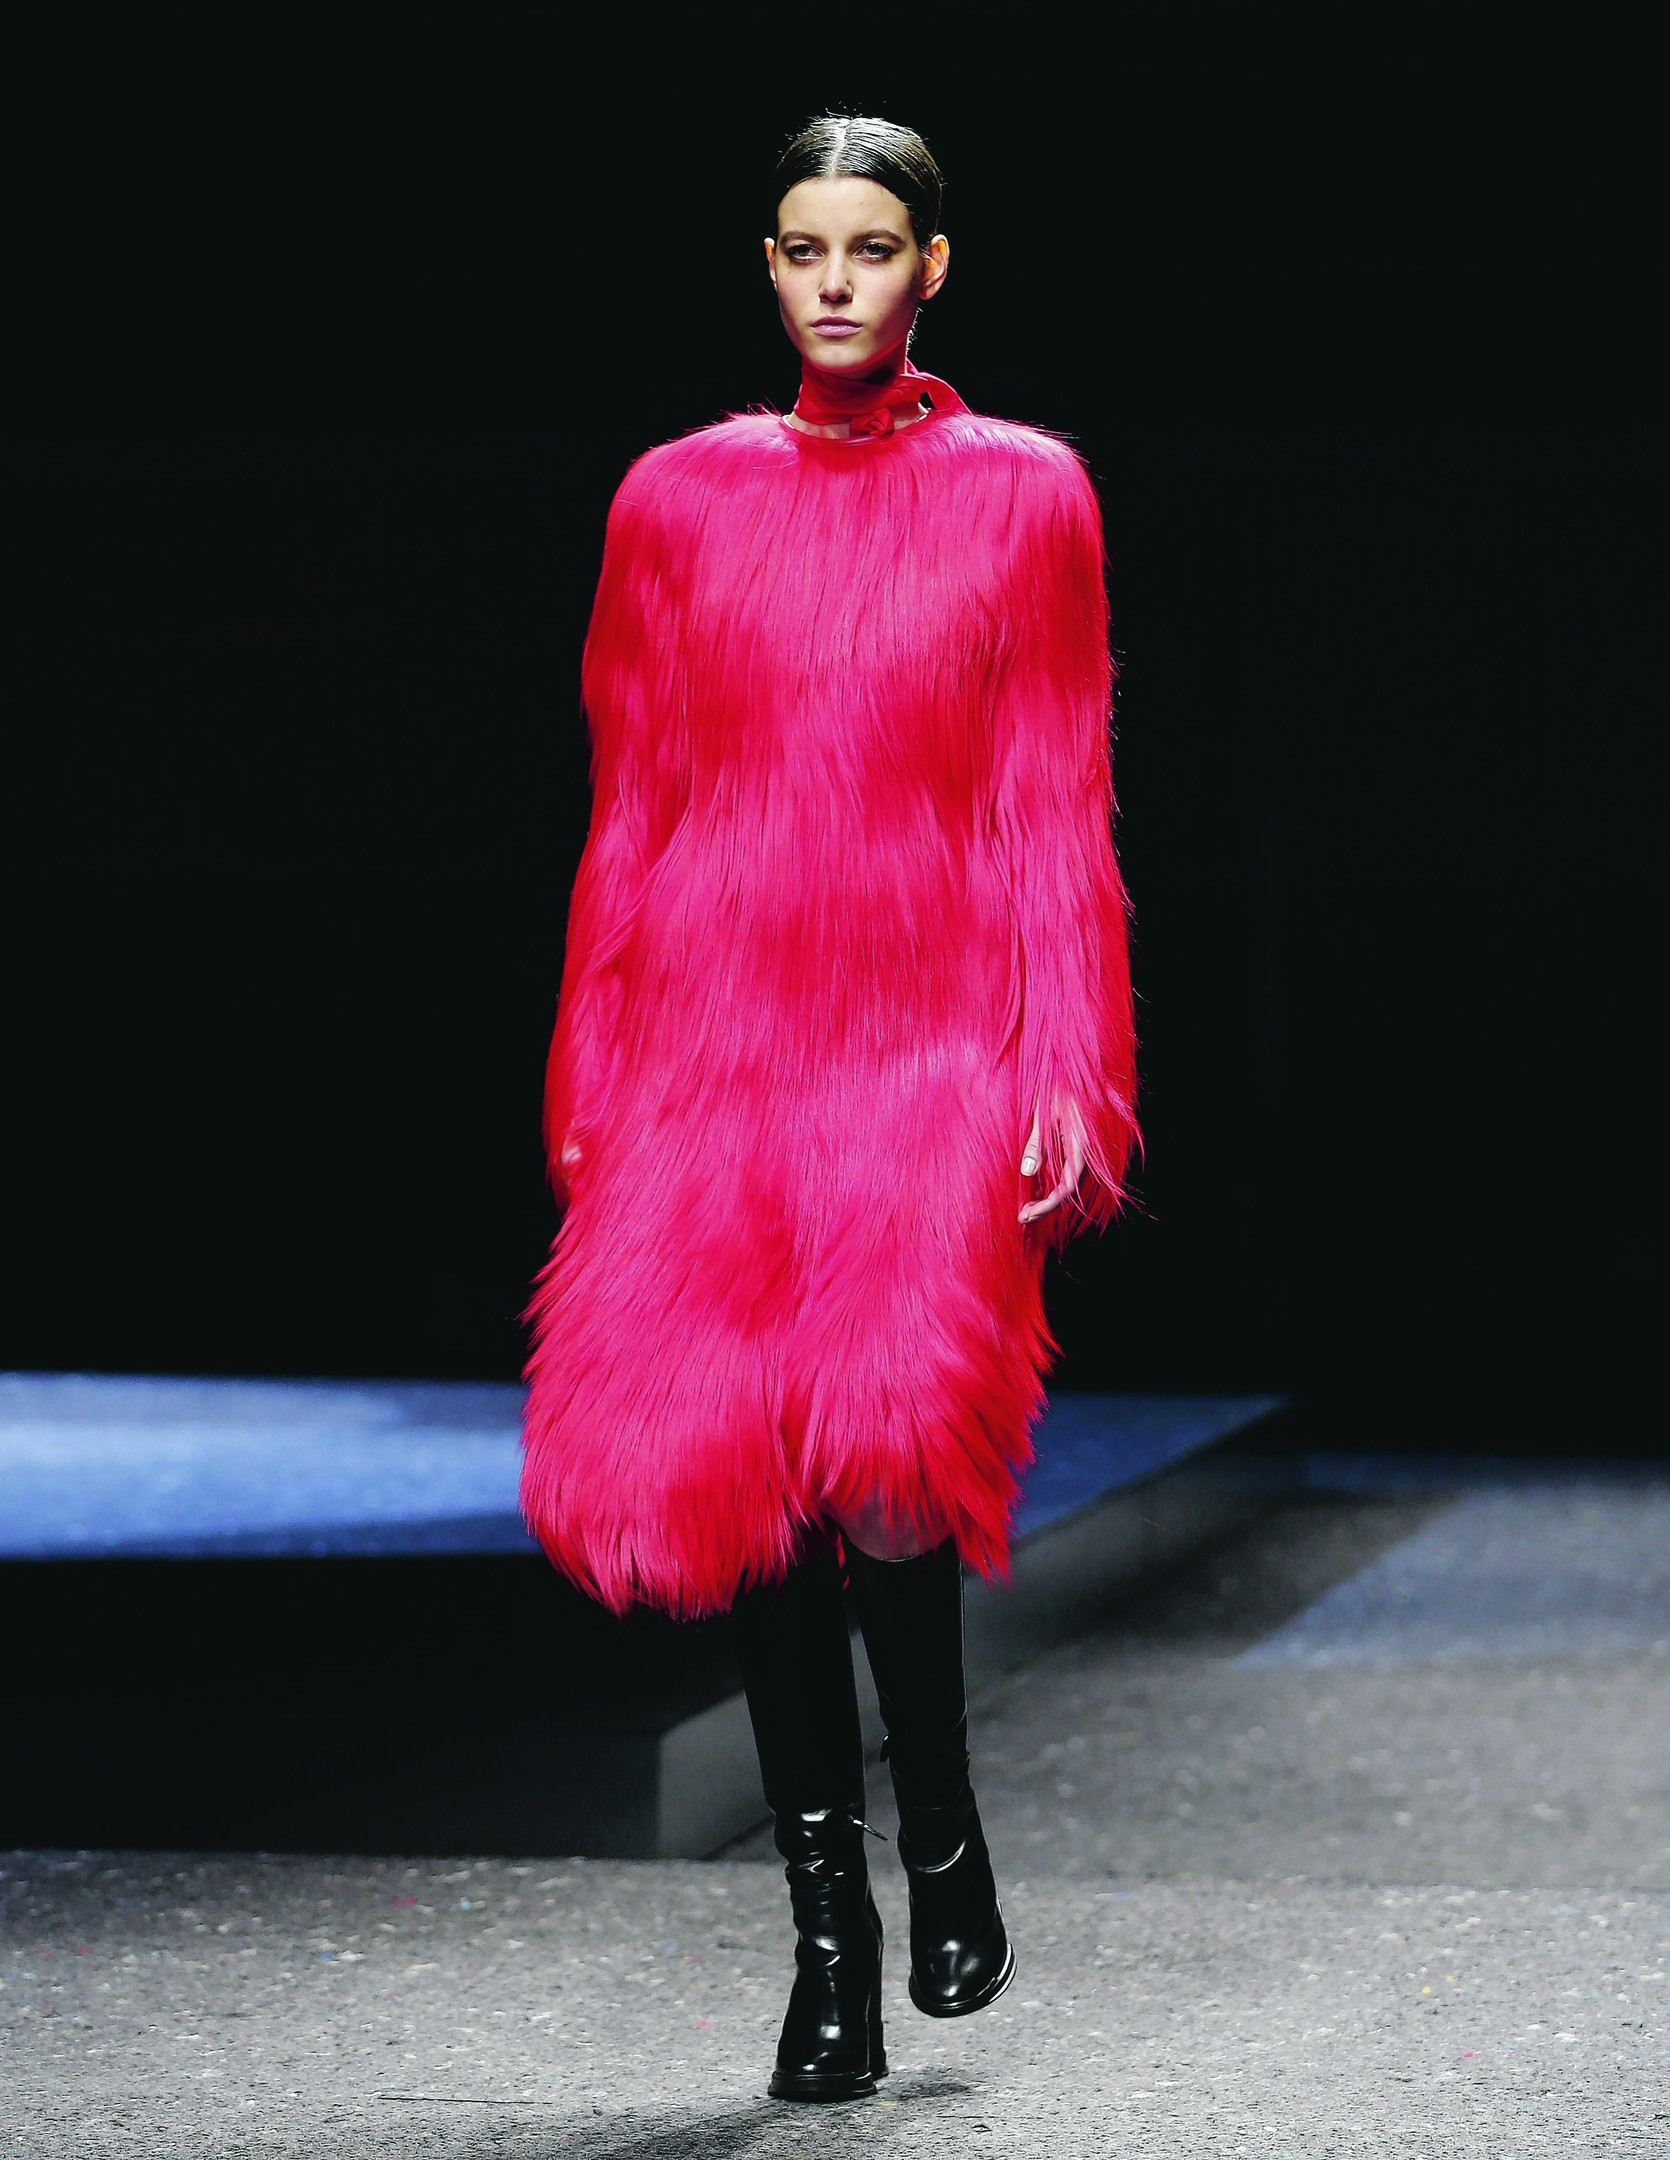 a model wearing a creation for Prada women's Fall-Winter 2014-15 collection, part of the Milan Fashion Week